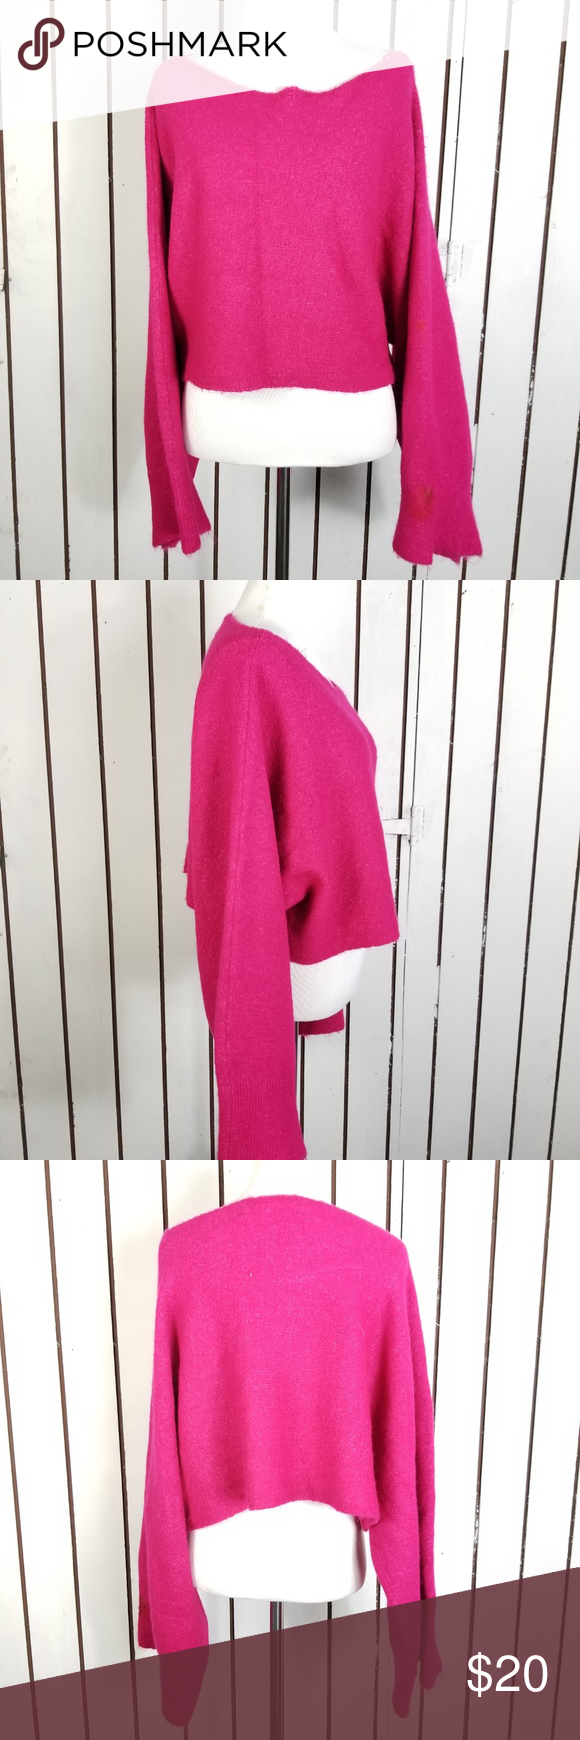 e34d0bf1 Zara chunkly cropped sweater hot pink size S Good condition, cropped ...